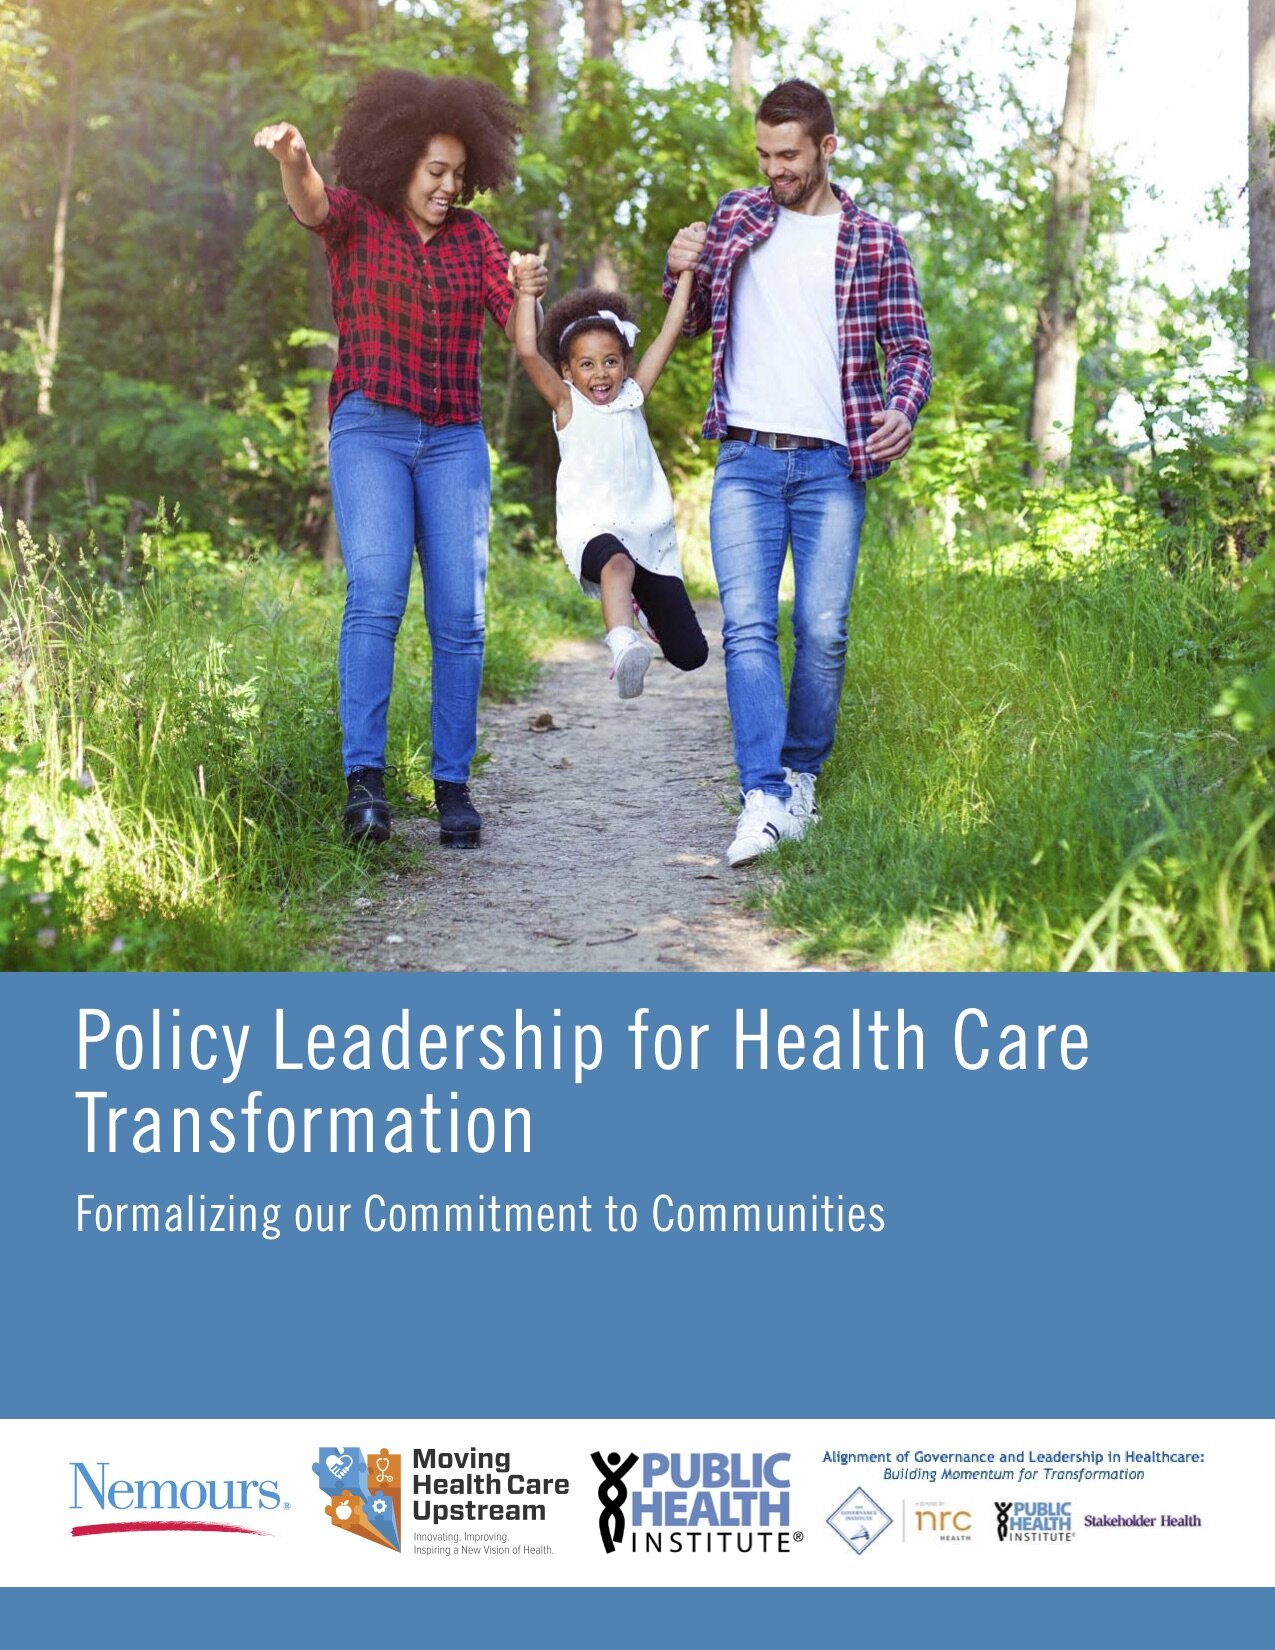 - Looking for our report: Policy Leadership for Health Care Transformation?Through this project, Public Health Institute and Nemours (on behalf of the Moving Healthcare Upstream Initiative) engaged 18 hospital and health systems seen as leaders in the upstream movement, specific to health care & community partnership that address social determinants of health. Examples from these leaders were synthesized into an organizing framework consisting of two major categories, or Foundational Pillars: internally-focused Institutional Policy Strategies and externally-focused Civic Engagement Strategies, each with sub-categories.The framework (which is fleshed out with detailed examples as well as sample documents shared by participating hospitals and health systems) is designed to serve as an actionable roadmap for hospitals and health systems in earlier stages of their own upstream journeys. Be sure to check out the executive summary and full report.Contact CACHE@phi.org for questions or more information.